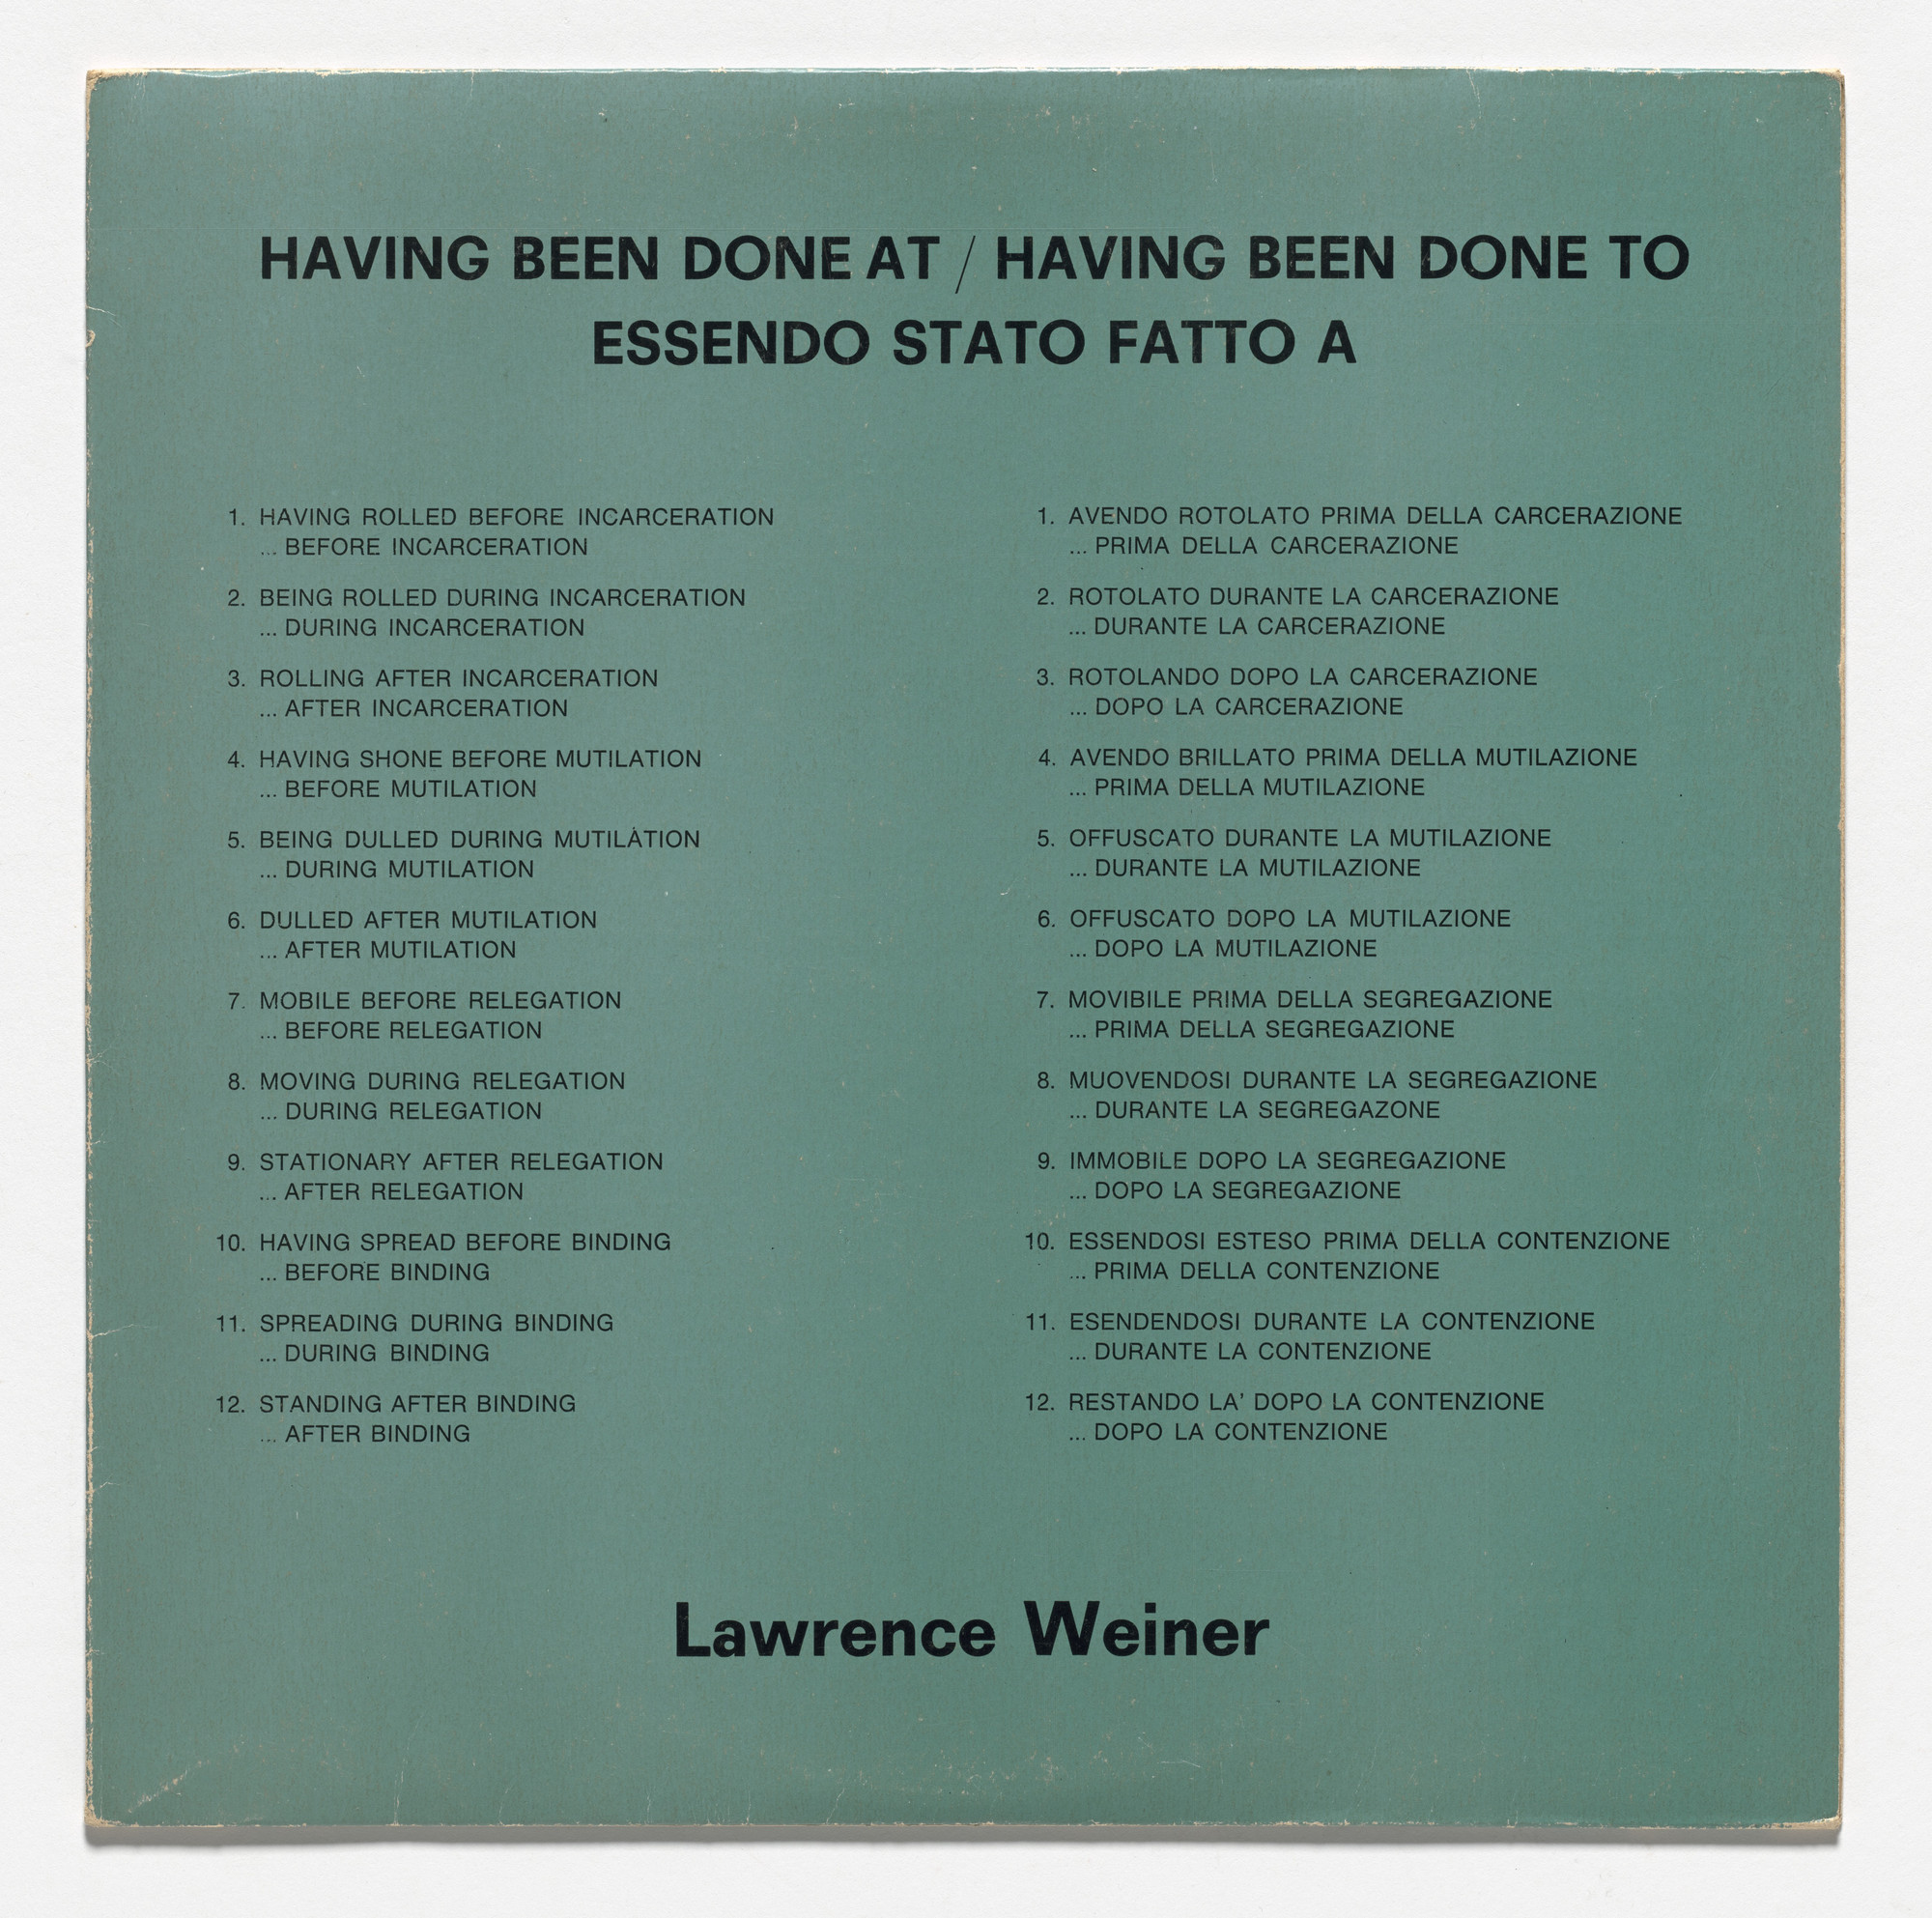 Lawrence Weiner. Having Been Done At / Having Been Done To - Essendo Stato Fatto A. 1973